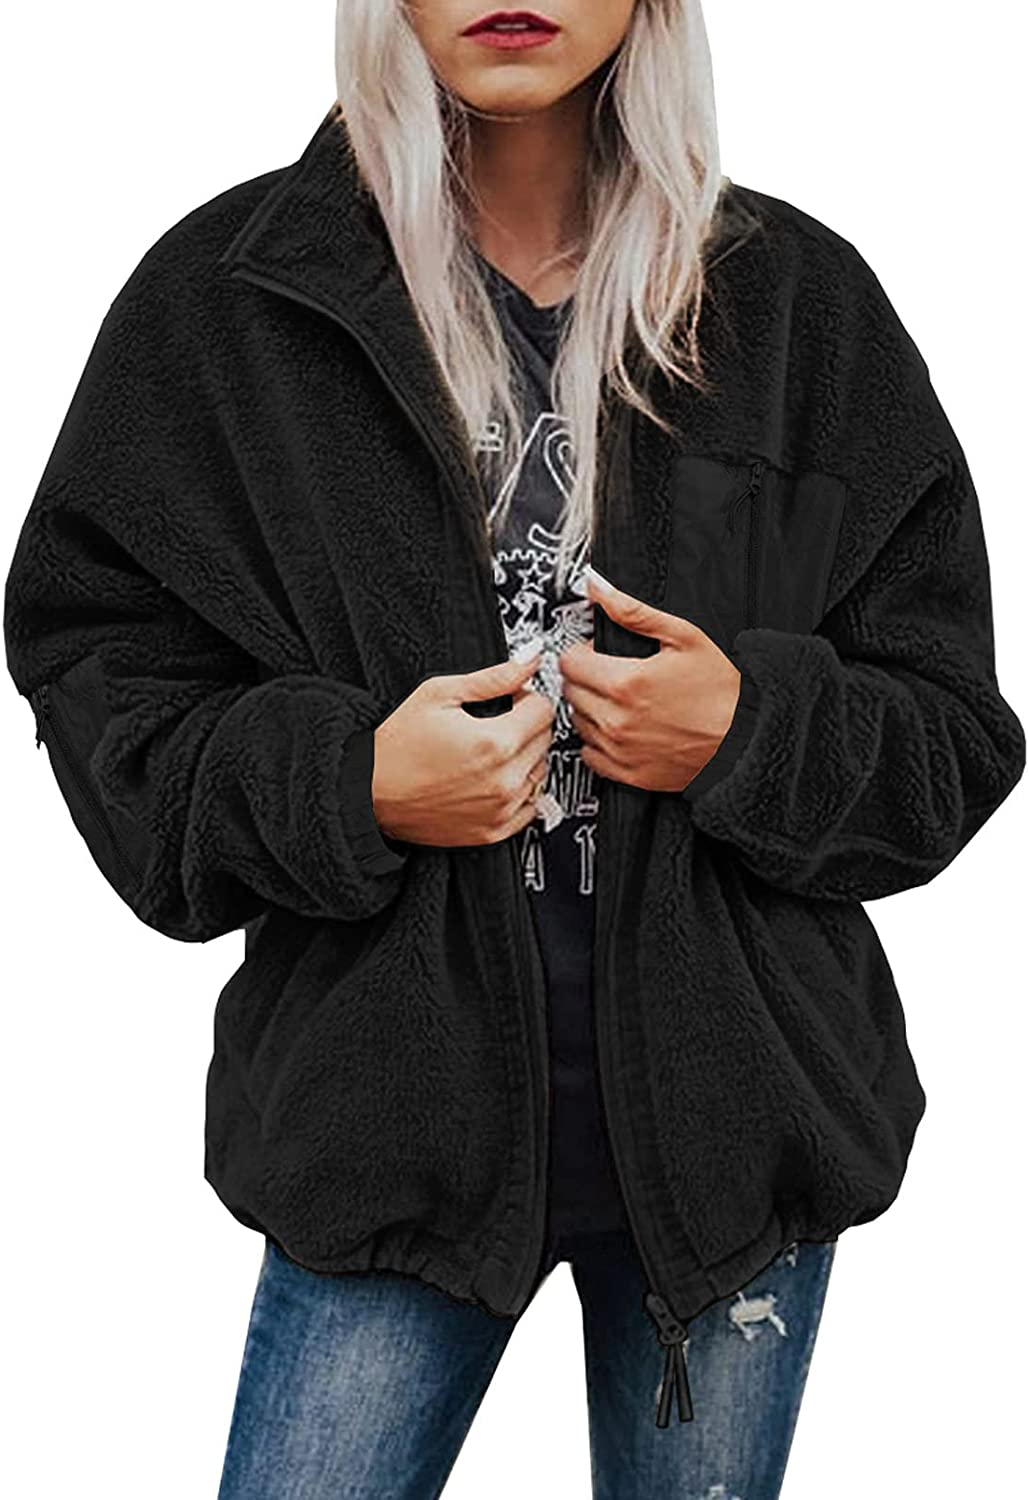 Ecrocoo Womens Casual Winter Zip Up Fleece Jackets Fuzzy Faux Shearling Shaggy Coats Outerwear with Pockets